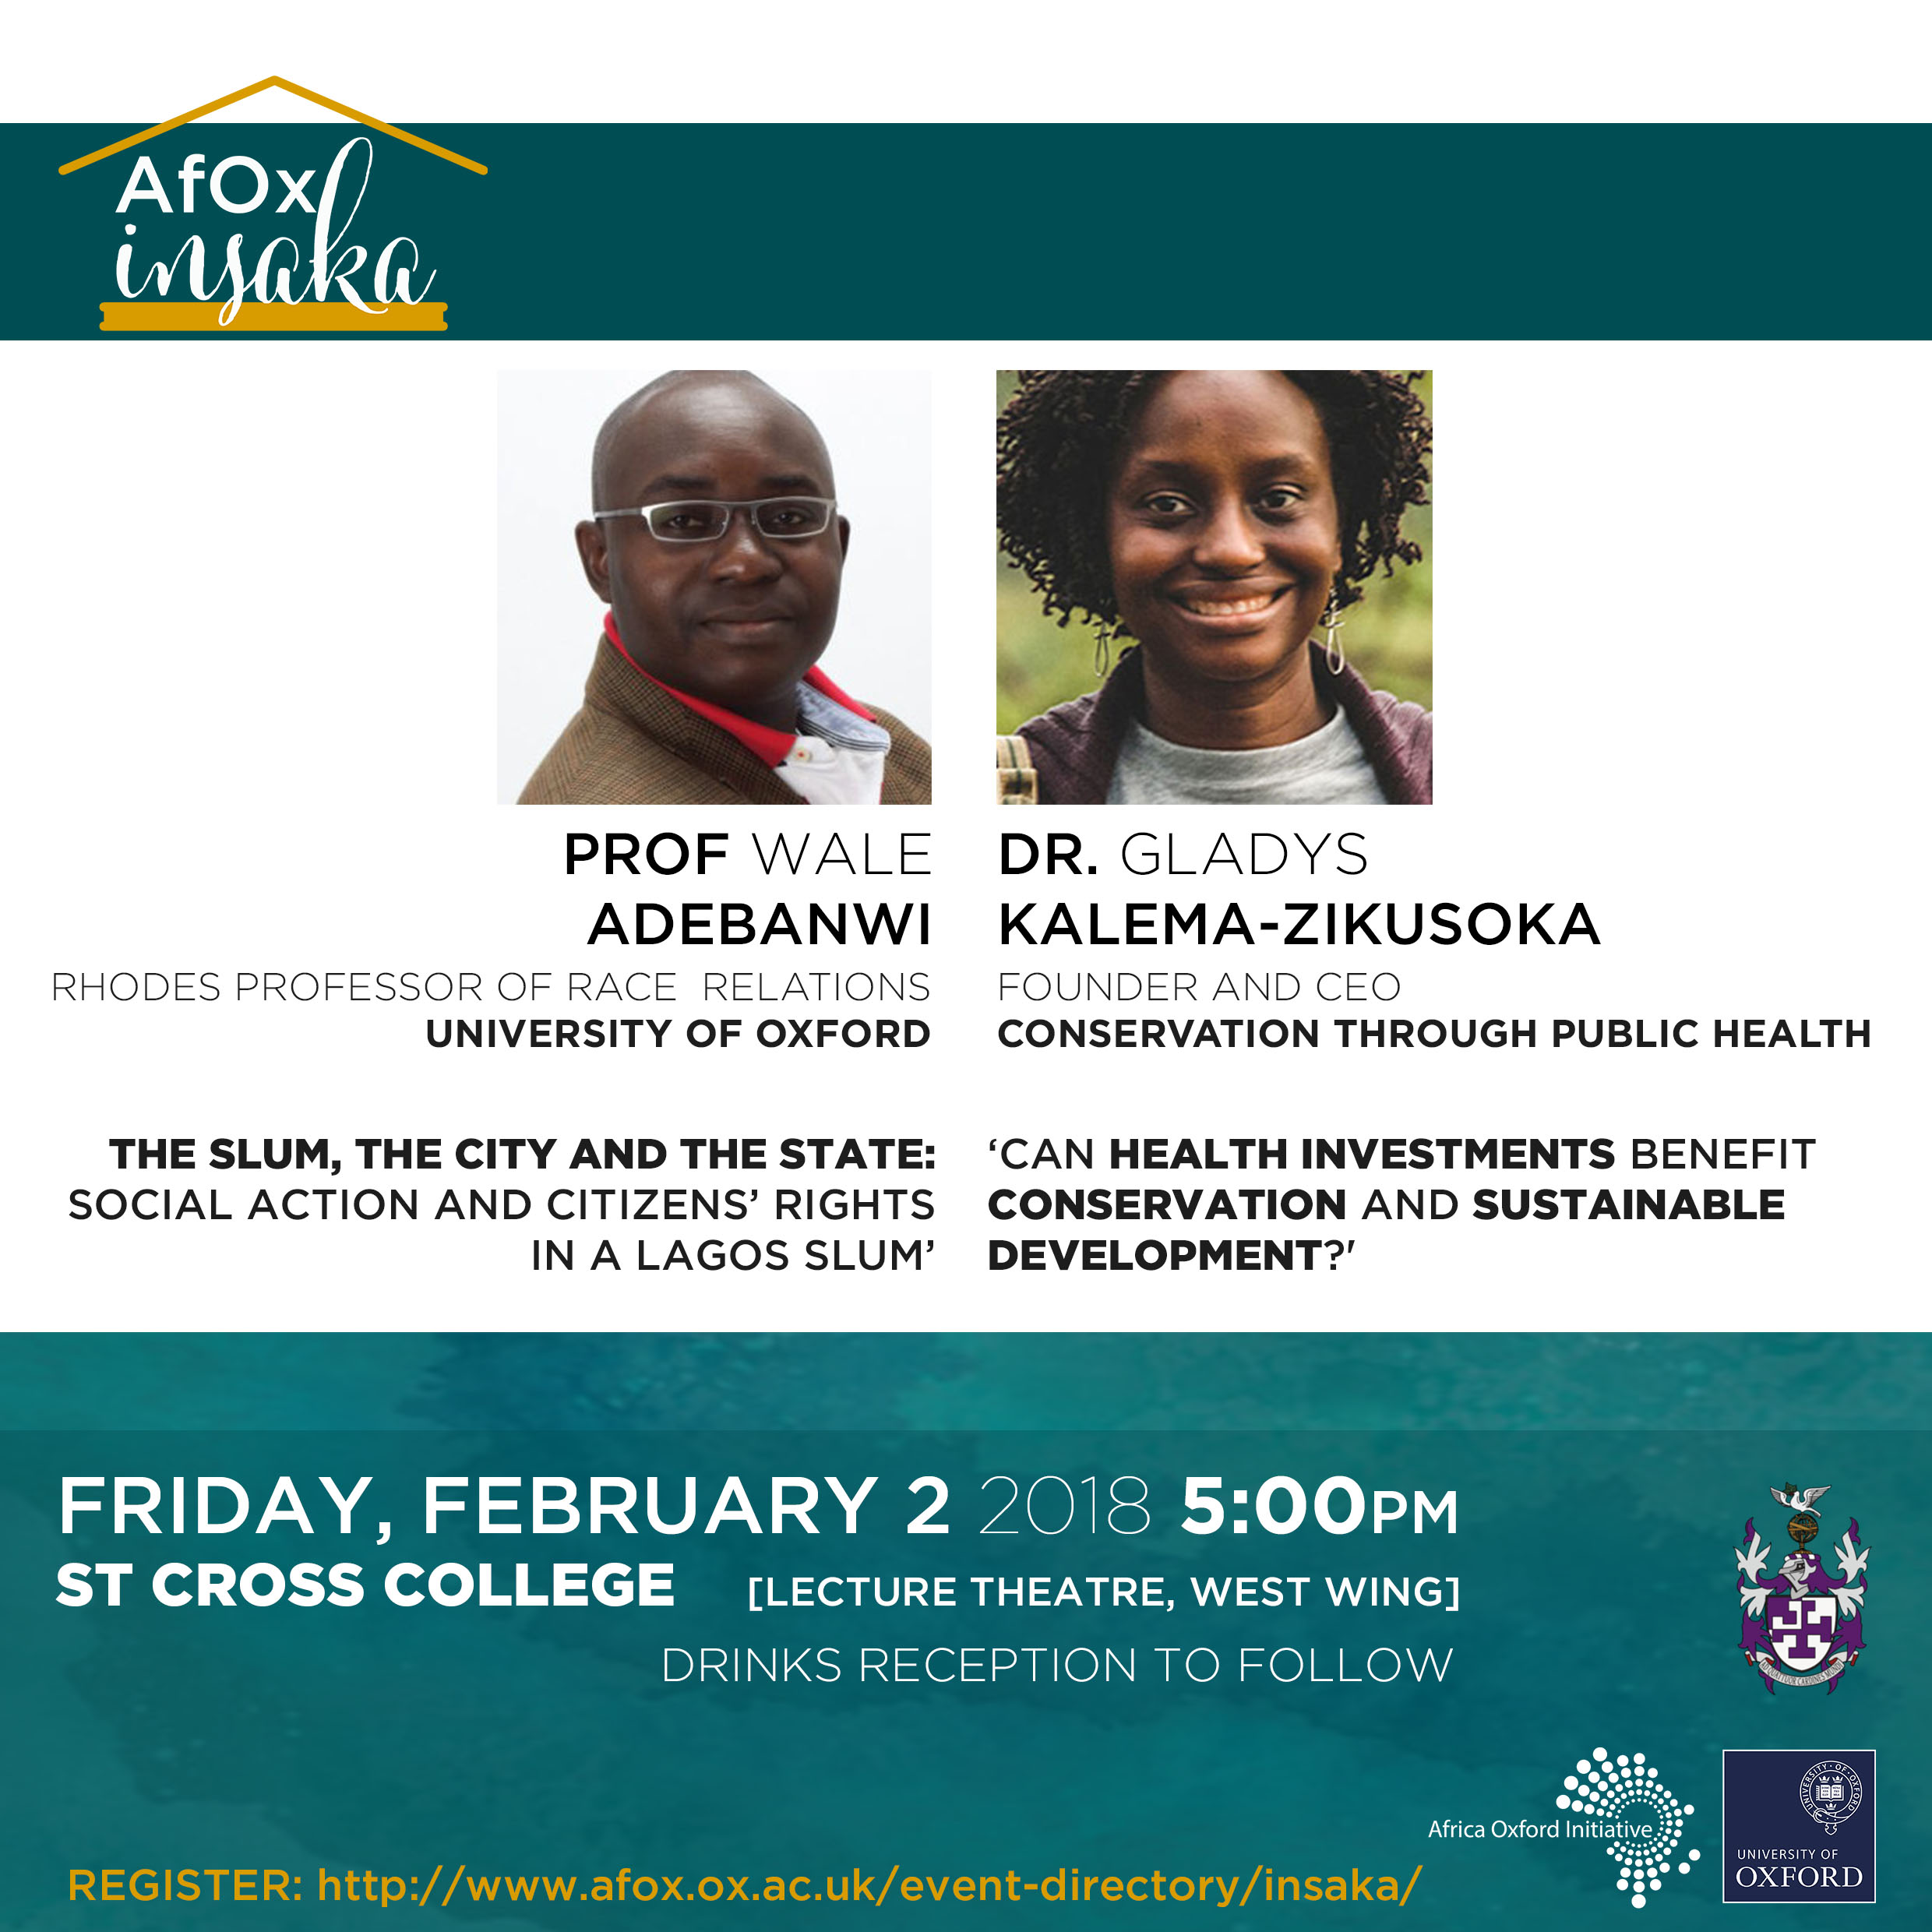 insaka poster showing date (2 february) time (5pm) and speakers